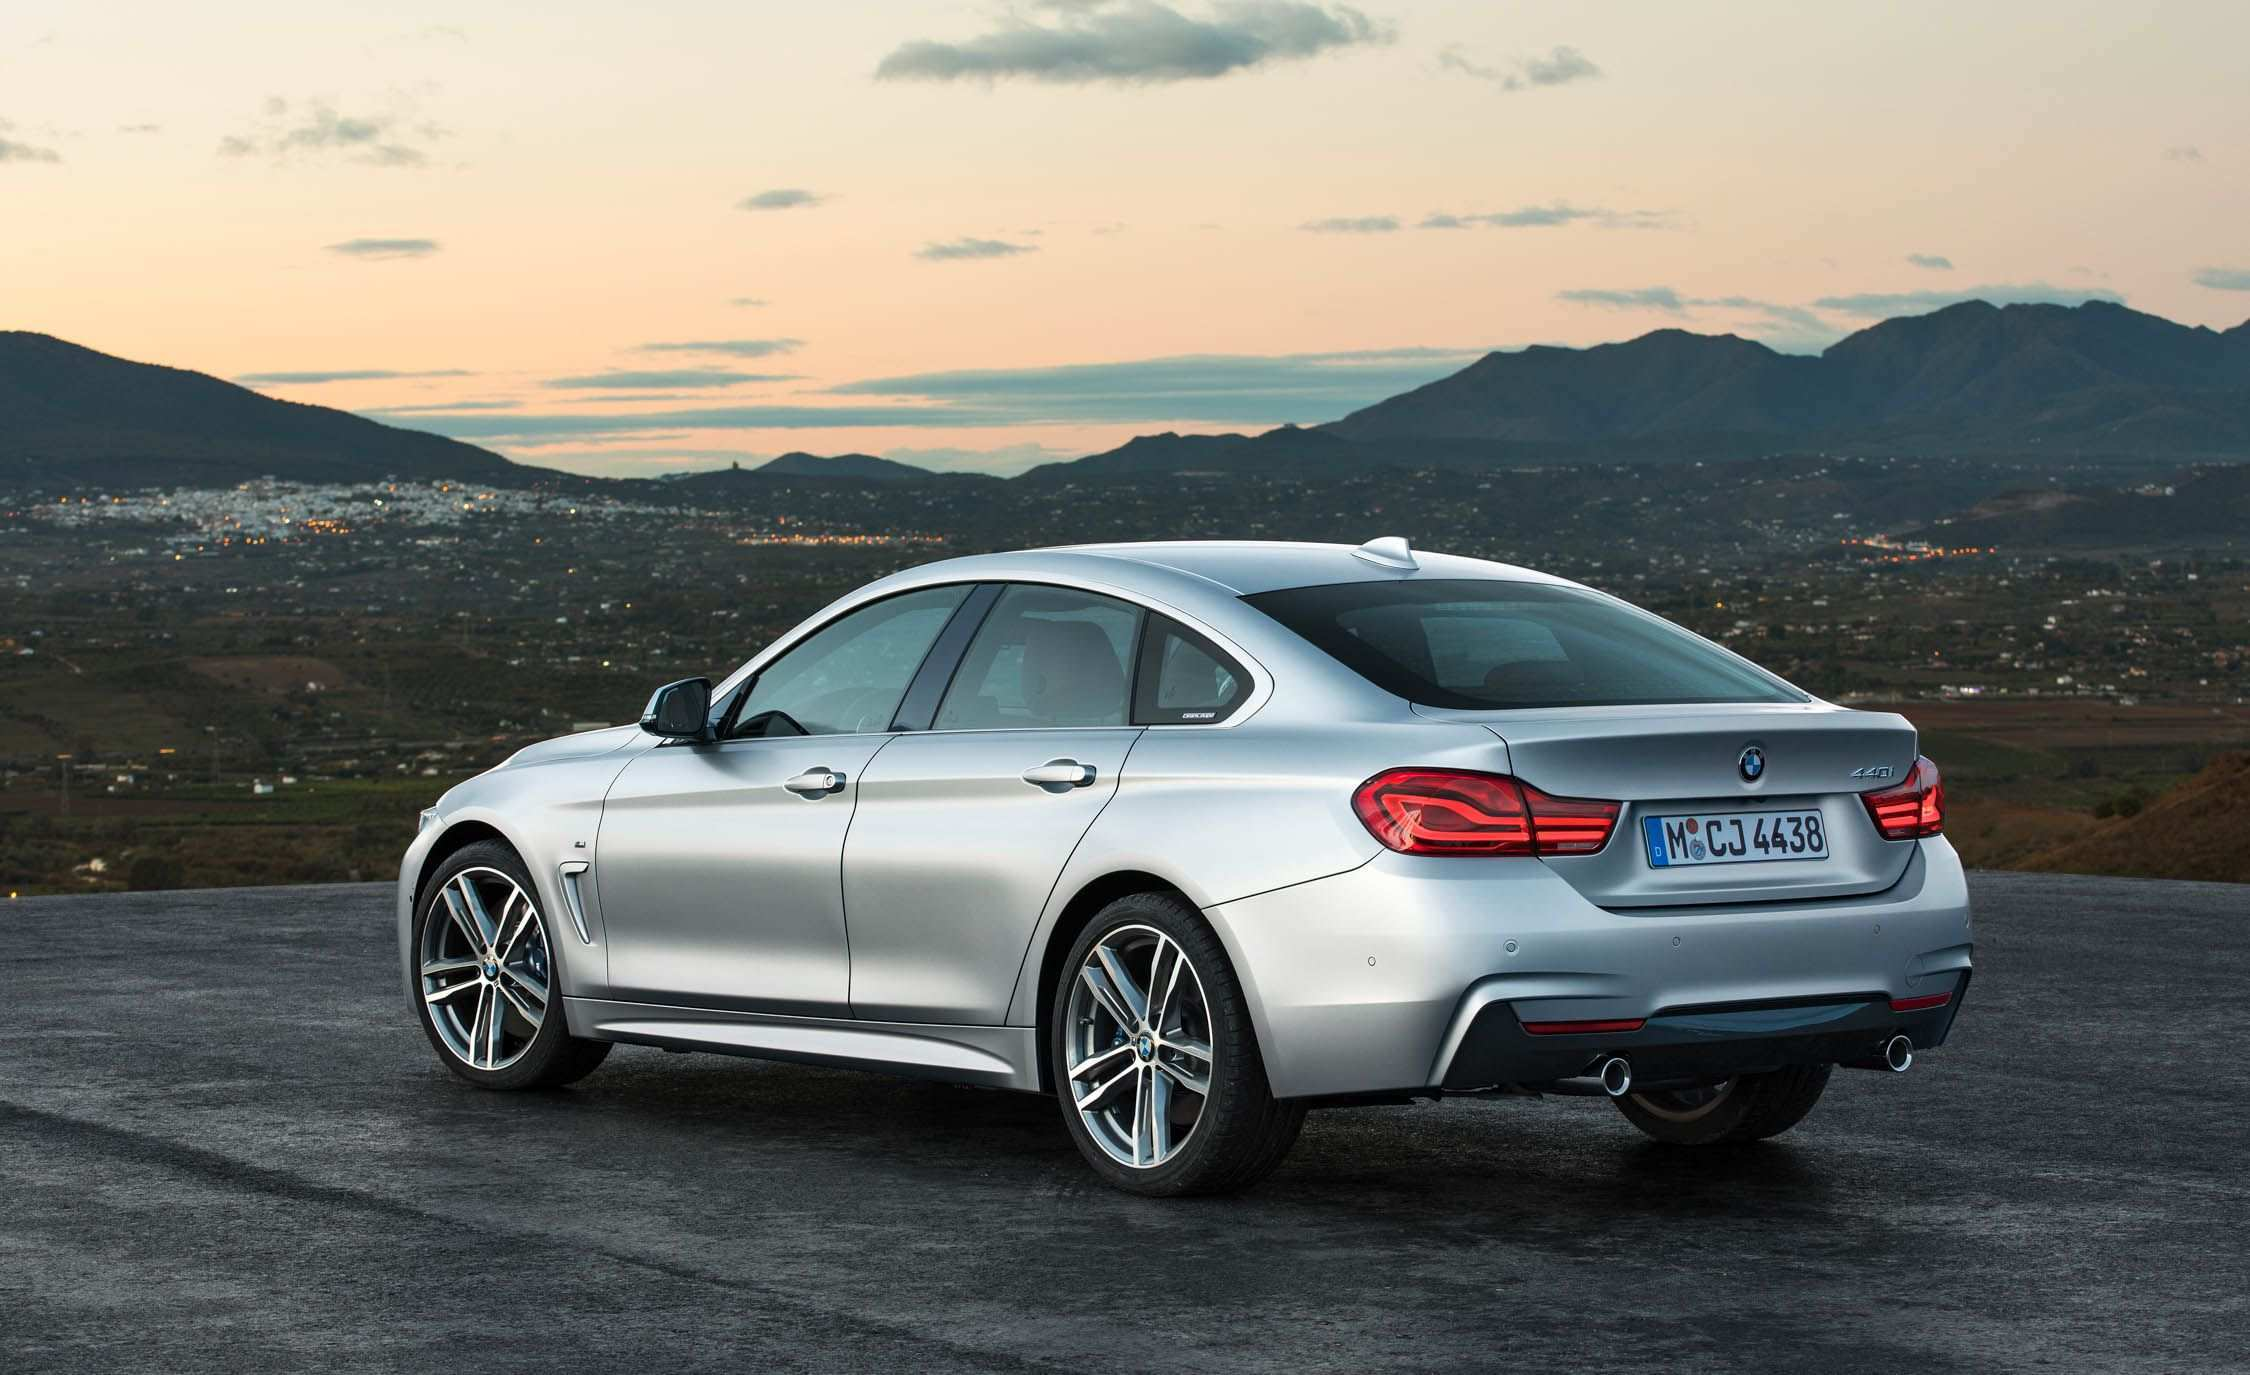 19 New 2020 Bmw 4 Series Gran Coupe Specs and Review with 2020 Bmw 4 Series Gran Coupe